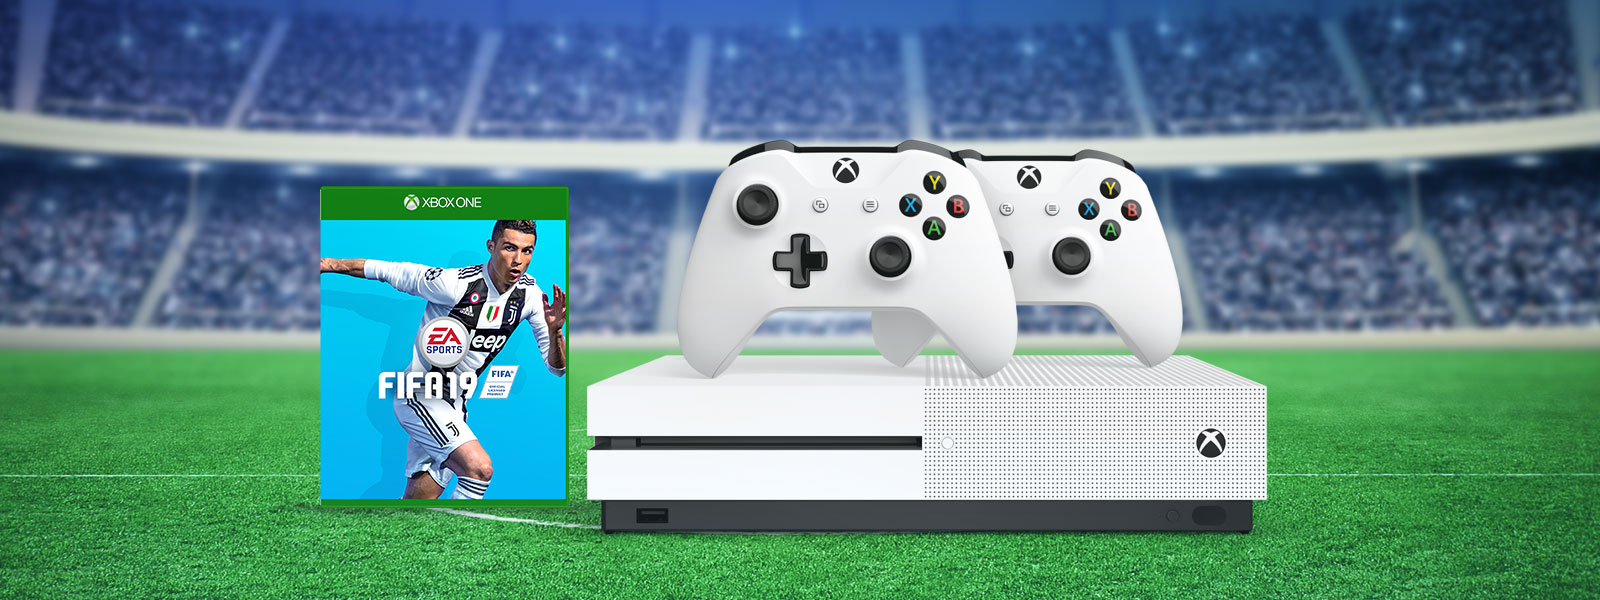 Get an Xbox One S, two controllers, and an additional game like FIFA 19, starting at €XXX